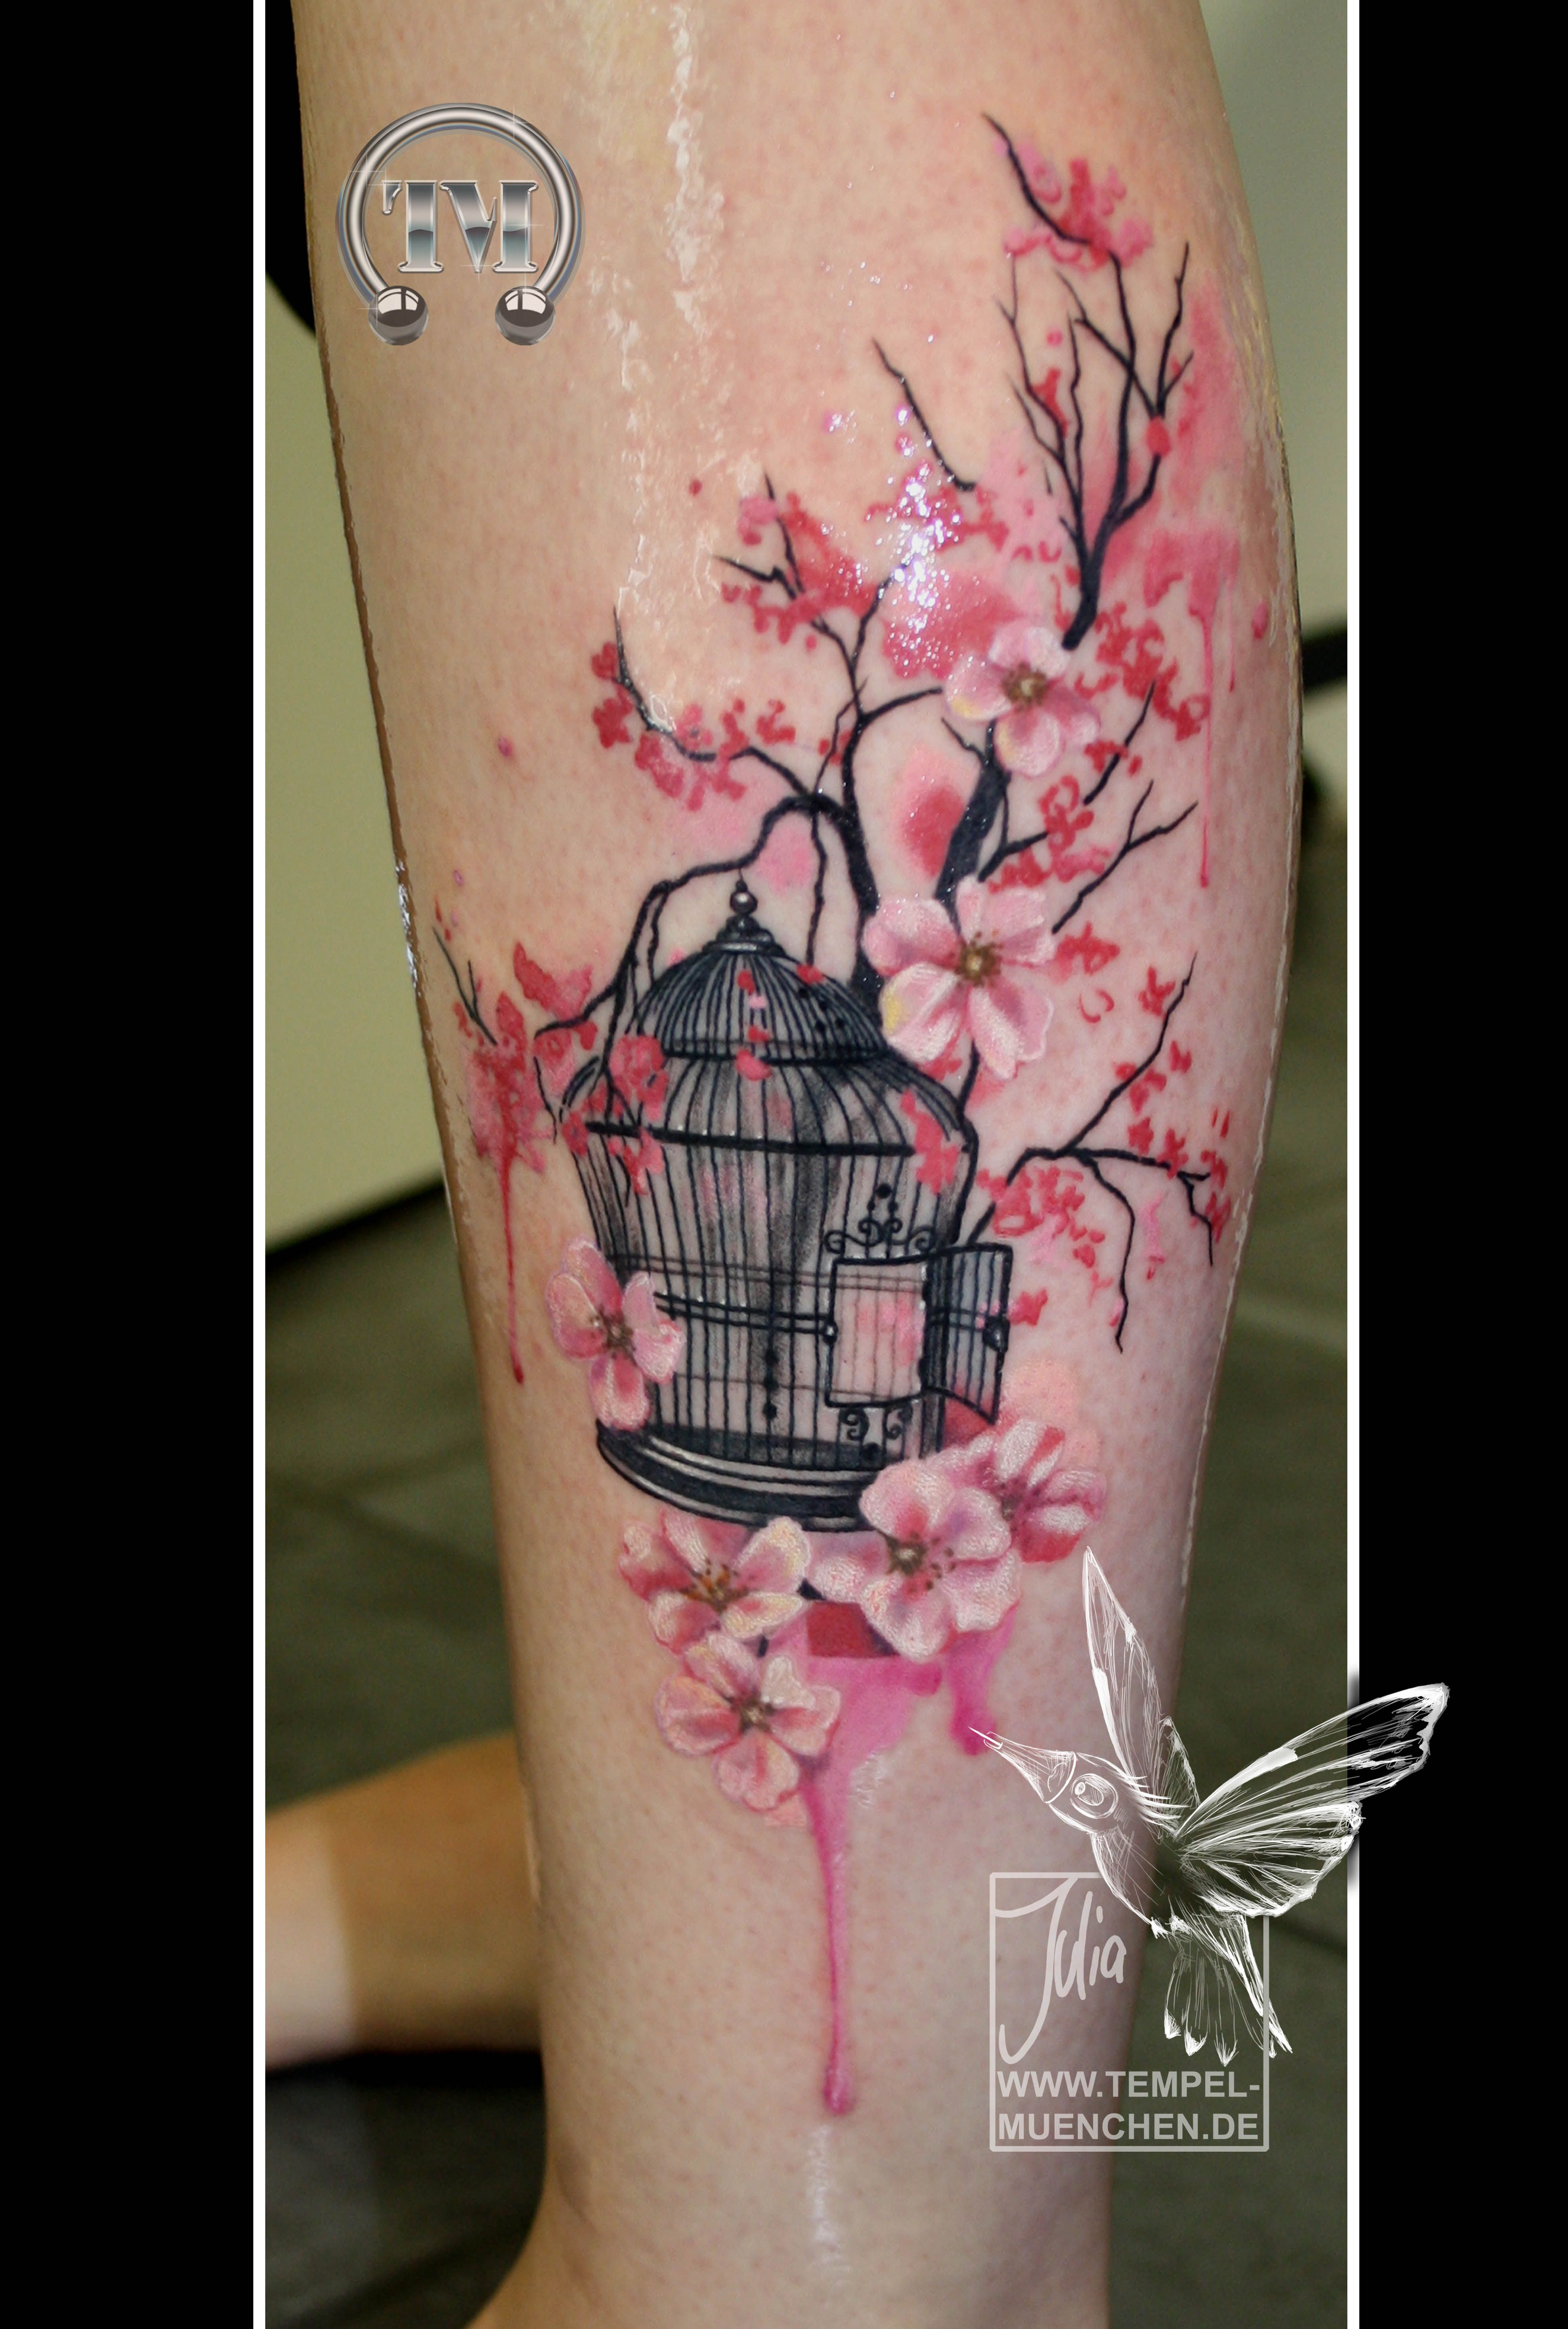 Browse Worlds Largest Tattoo Image Gallery Trueartists Com Add